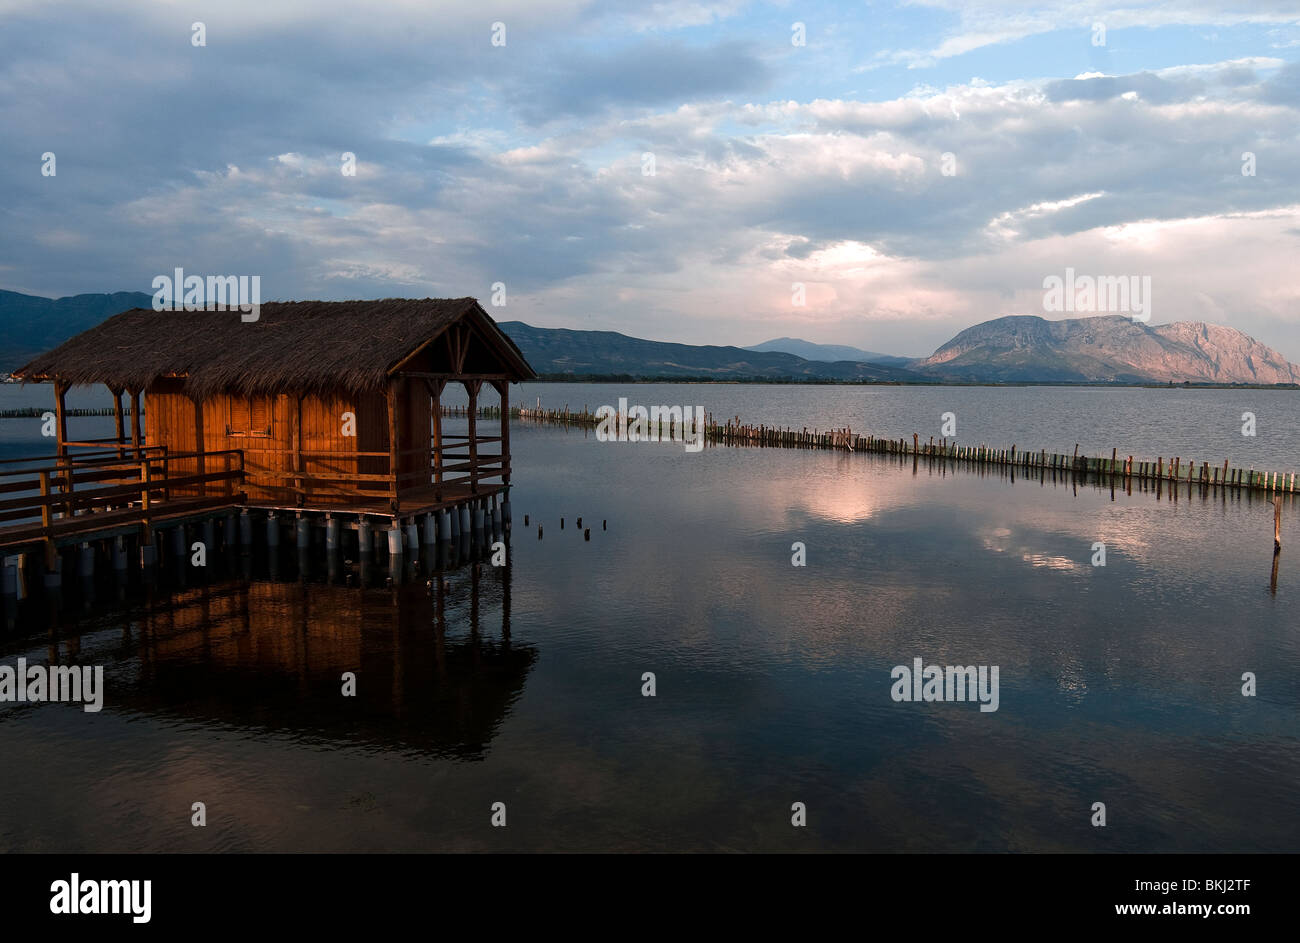 Wooden fisherman house in the middle of  lagoon with calm water of Messolonghi at sunset - Stock Image